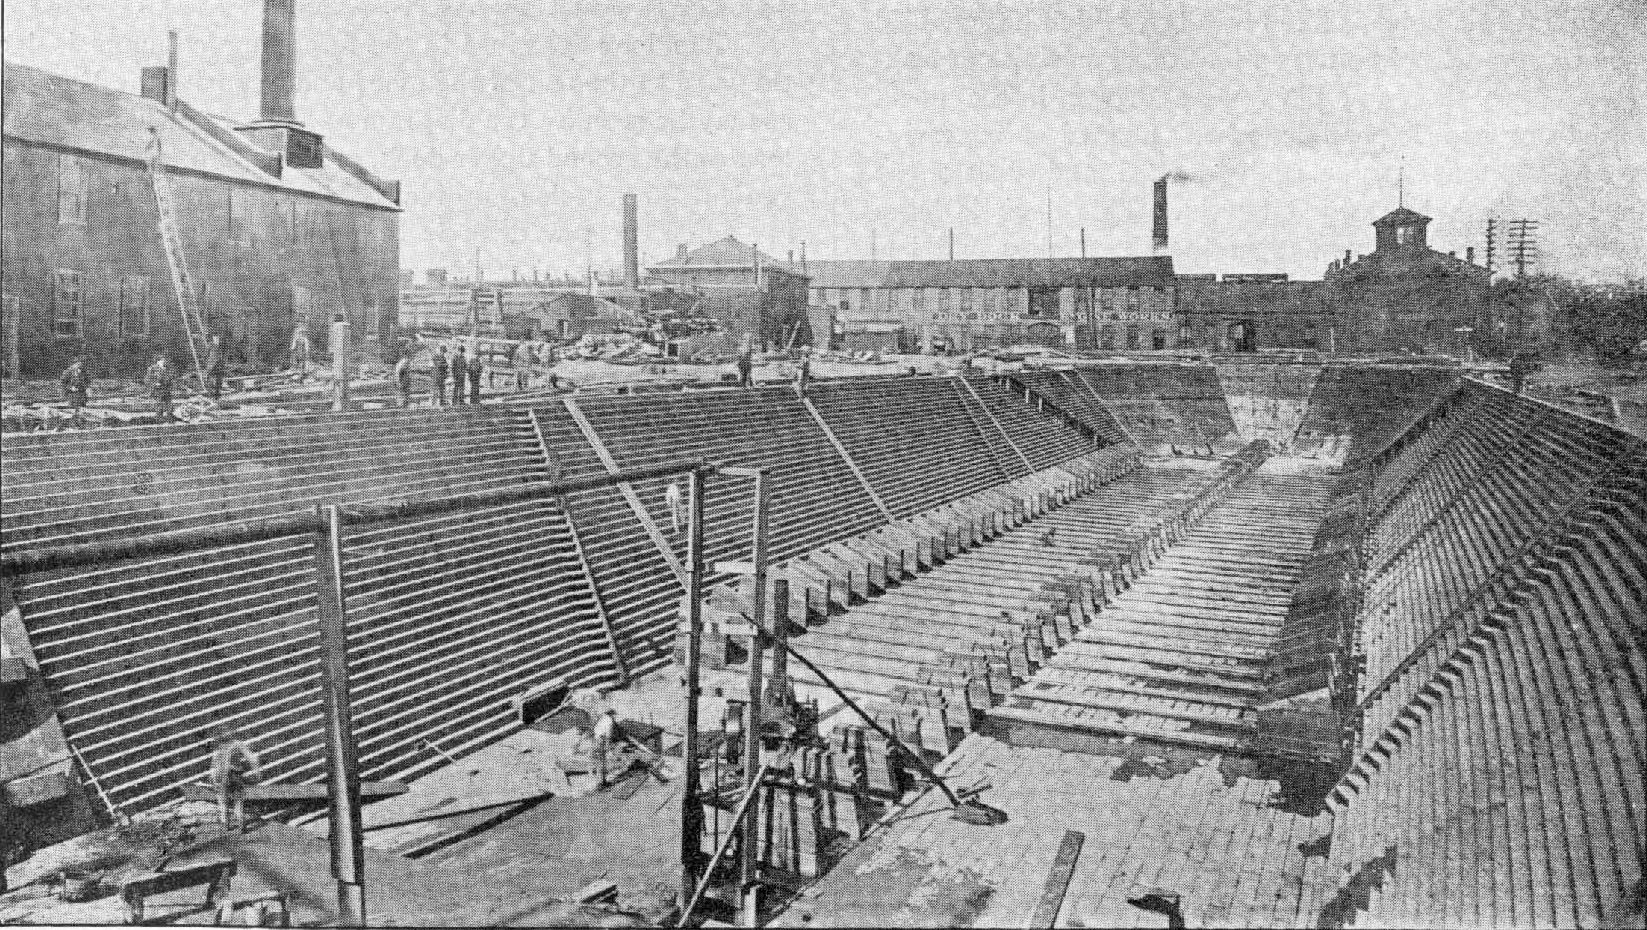 Detroit Dry Dock #2 in 1892 (image from Wikimedia Commons).